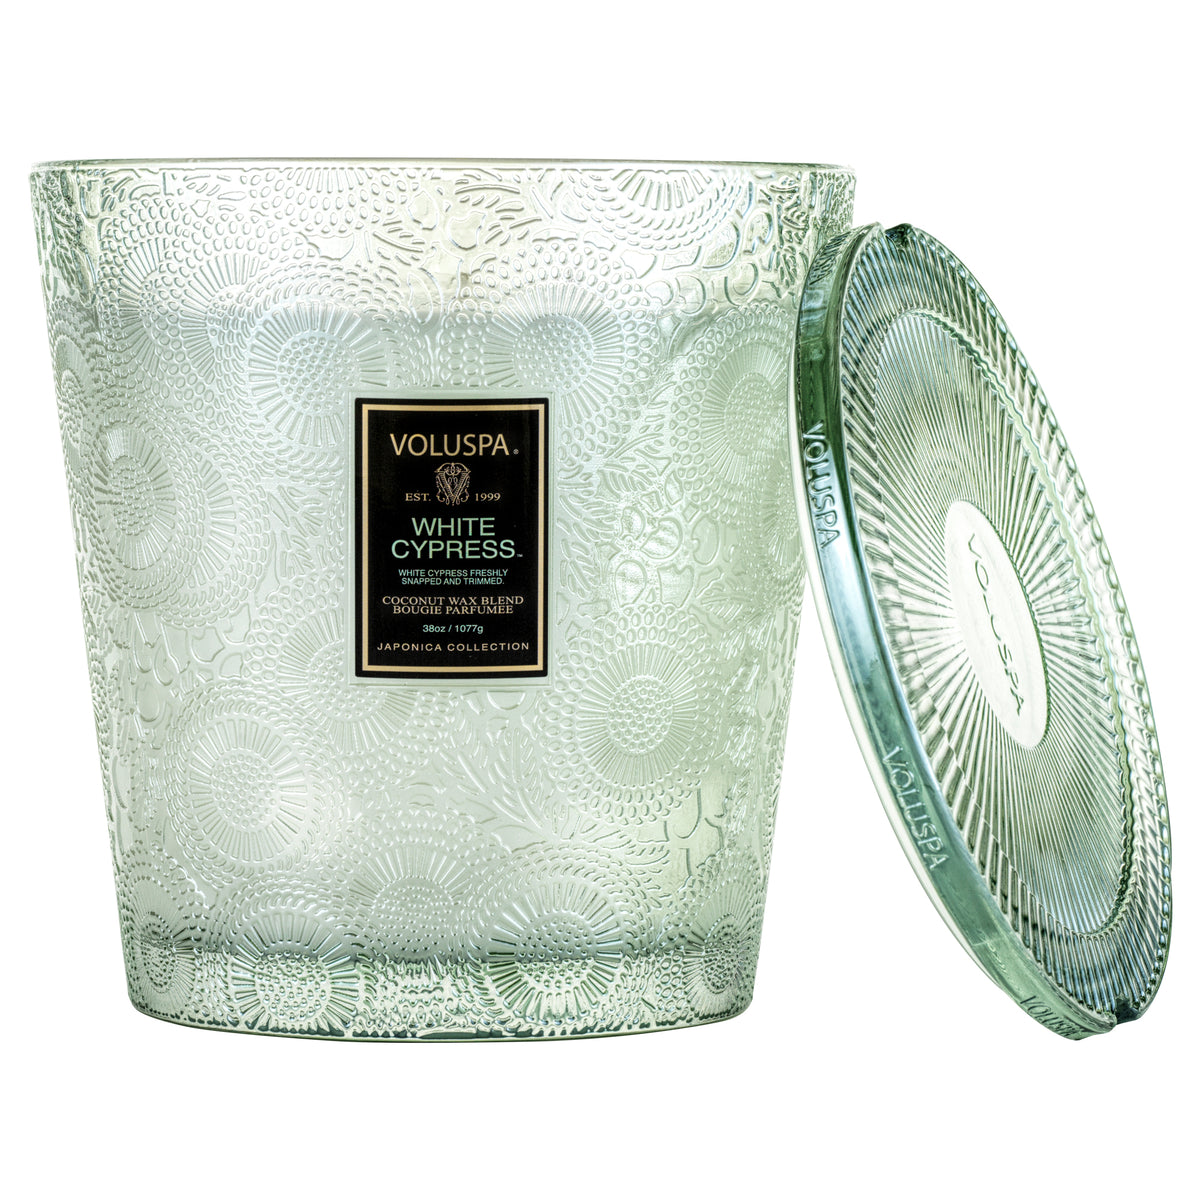 White Cypress - 3 Wick Hearth Candle - 1